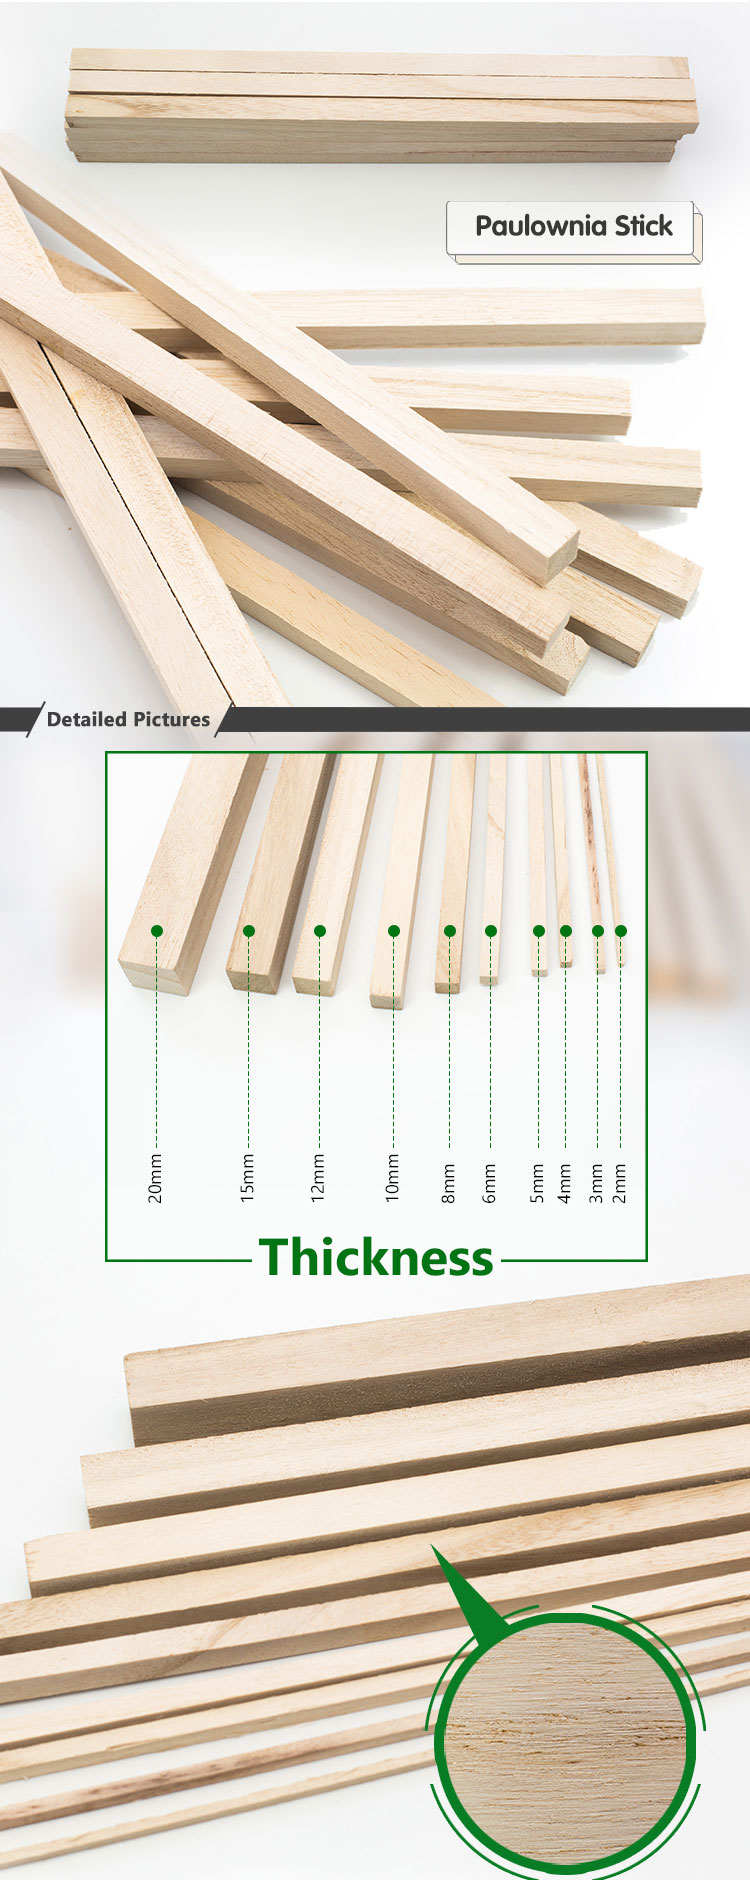 Sell Buy 2Mm 3Mm Paulownia Material Sawn Lumber Tomentosa Elongata Wood Price Supplier For Sale Slats Solid Paulownia Wood Strip